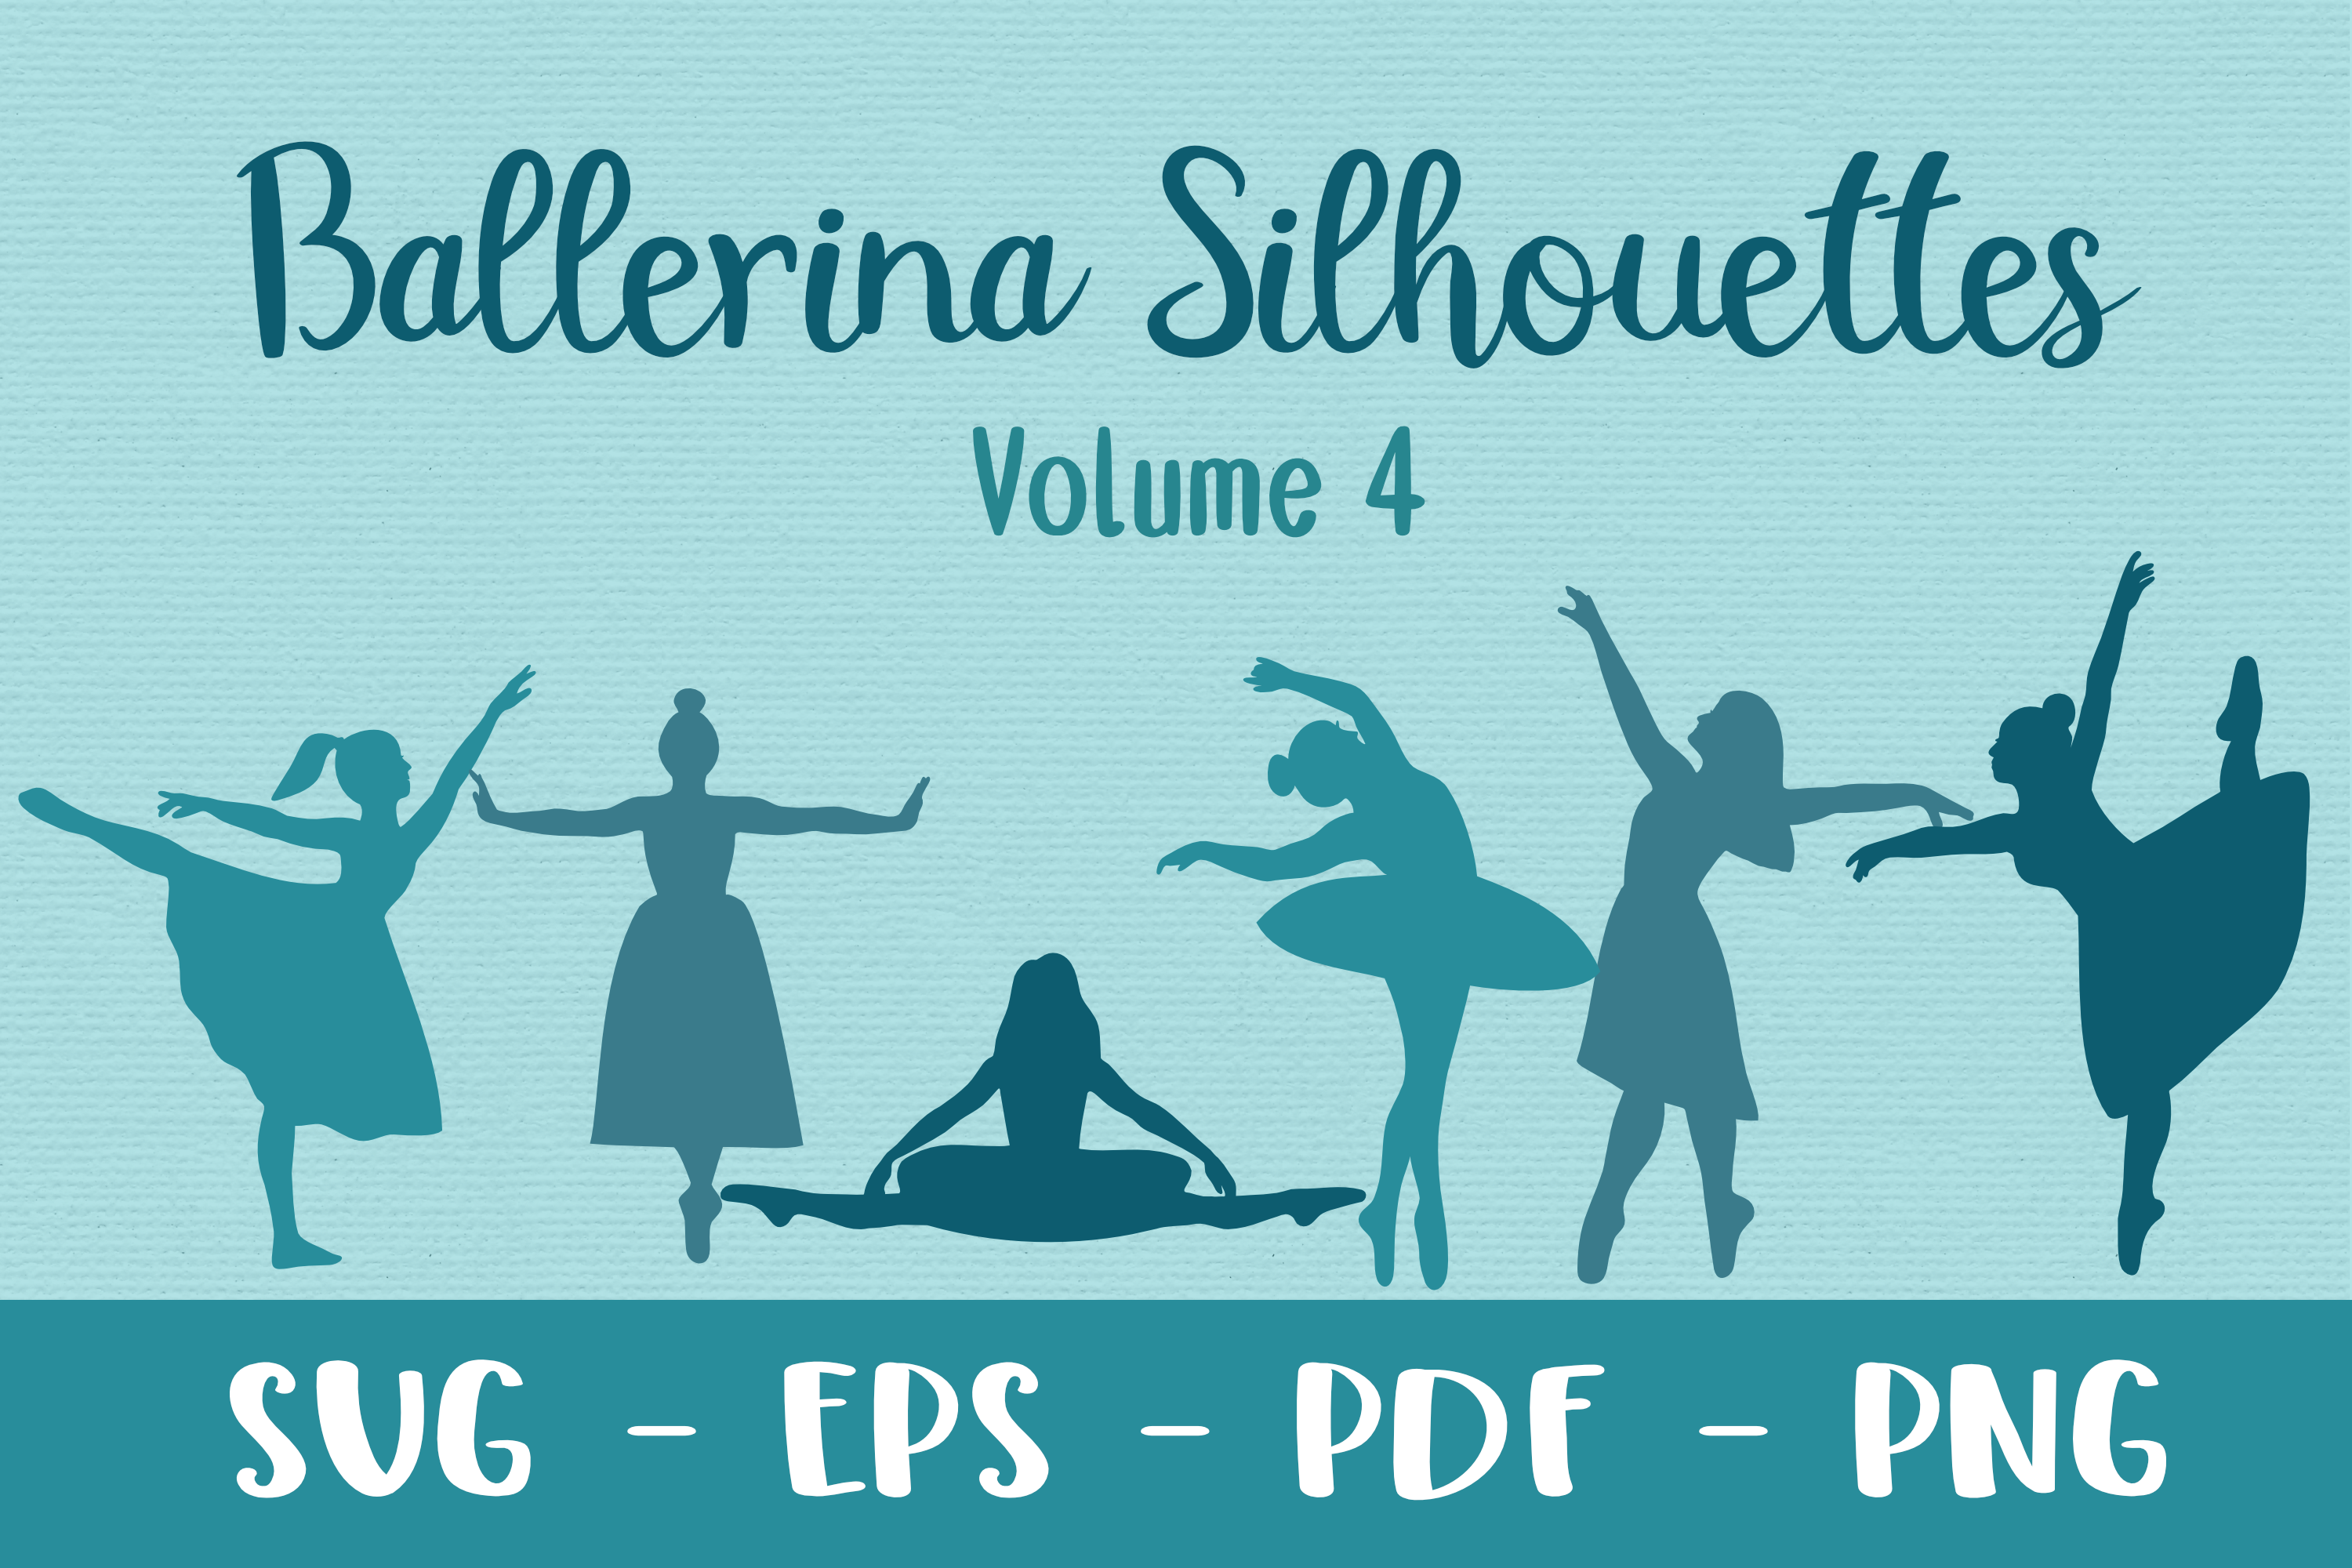 Download Free Ballerina Silhouettes Volume 4 Graphic By Merakireveriestudio for Cricut Explore, Silhouette and other cutting machines.